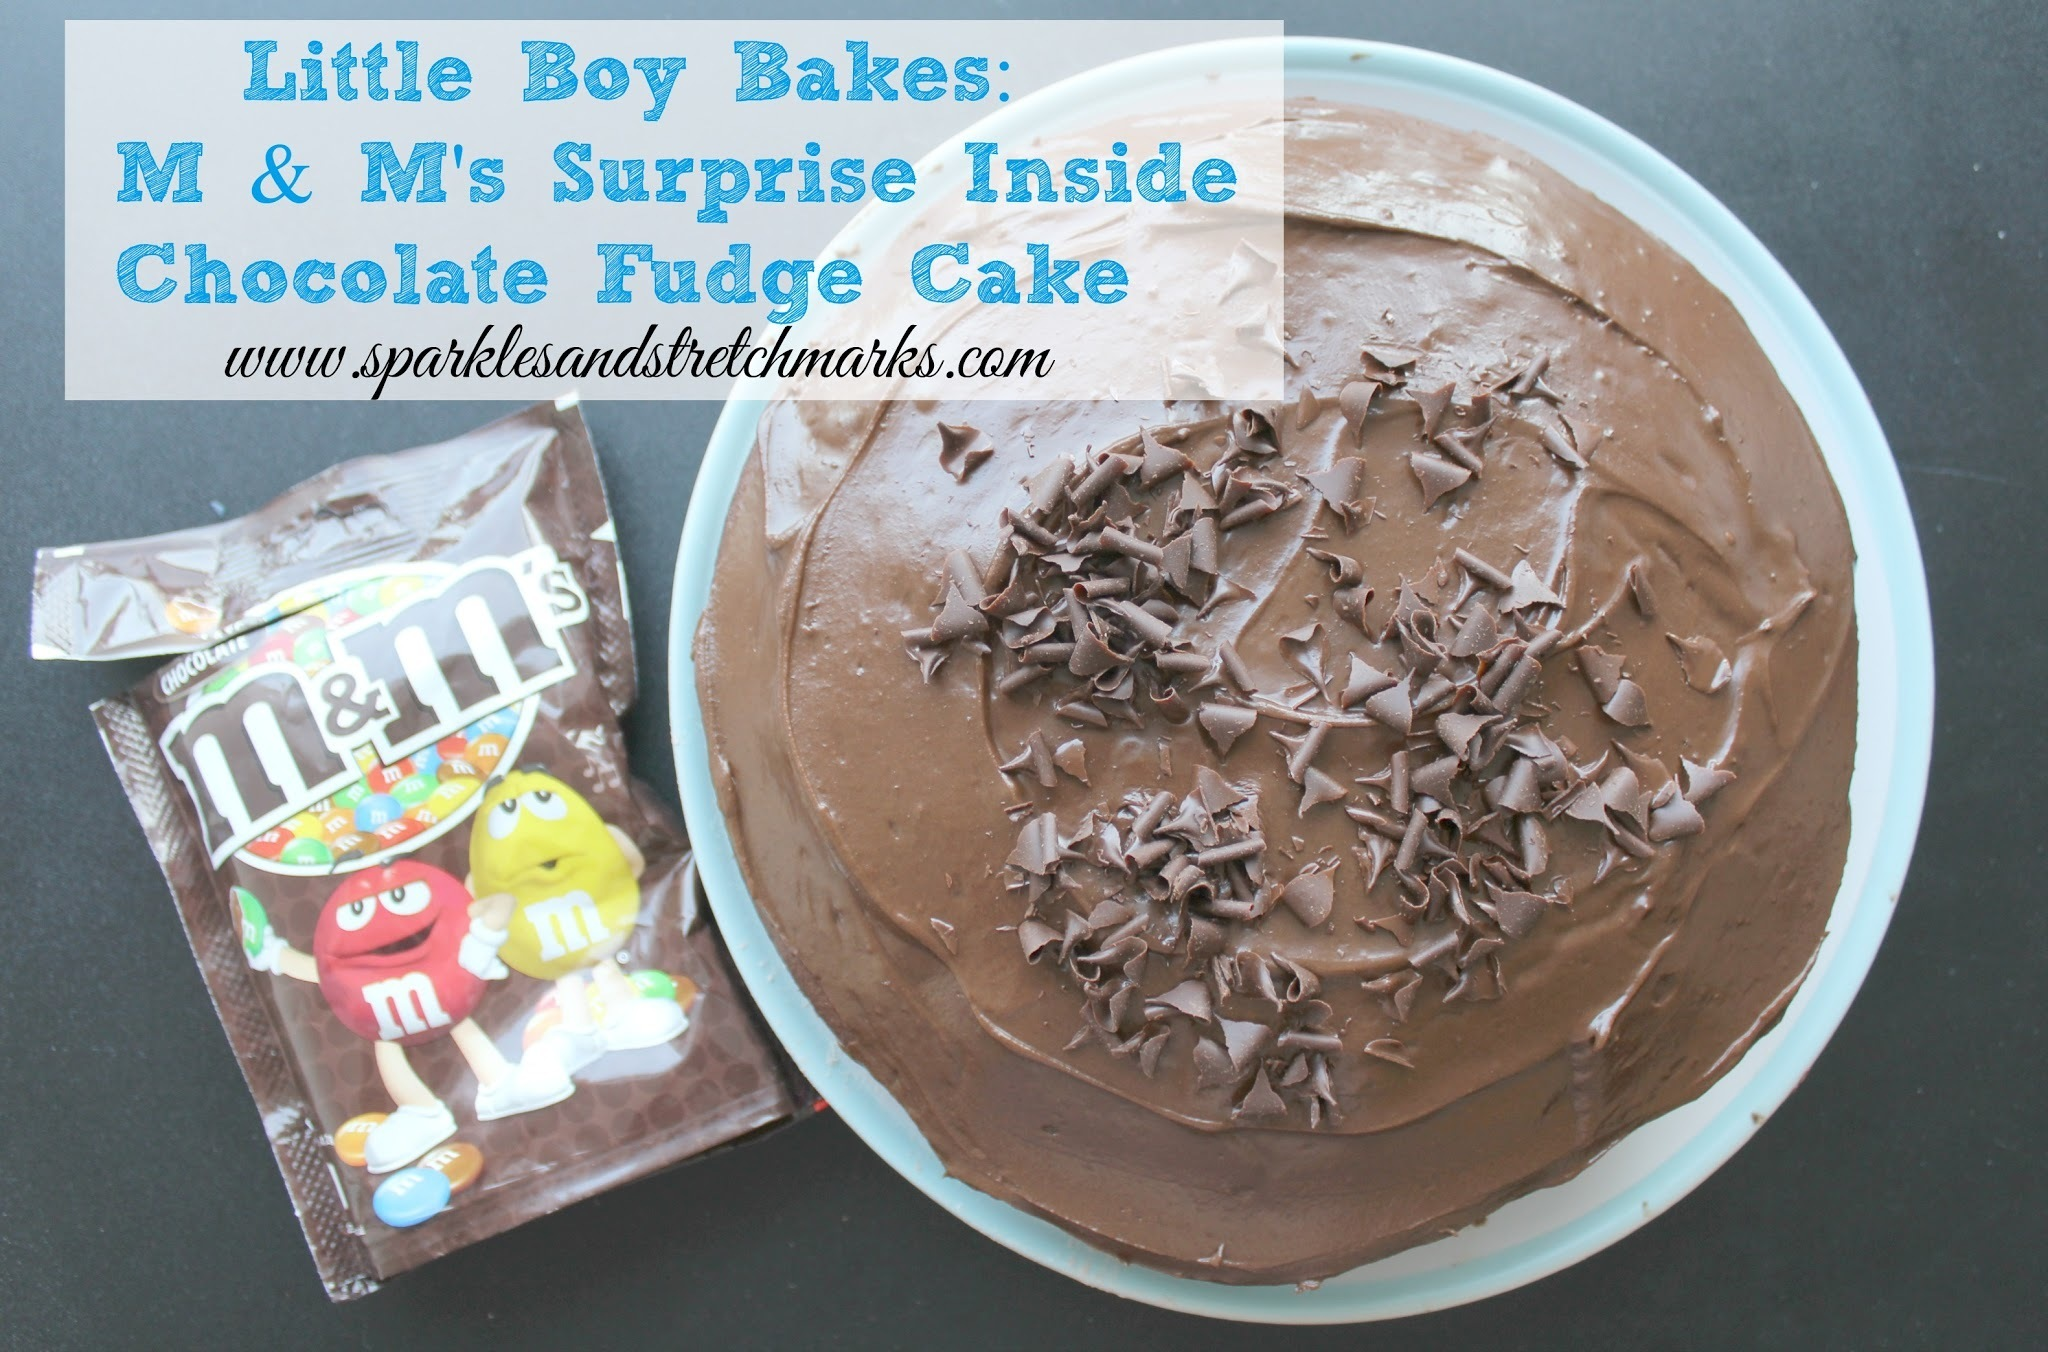 Little Boy Bakes: M & M's Surprise Inside Chocolate Fudge Cake